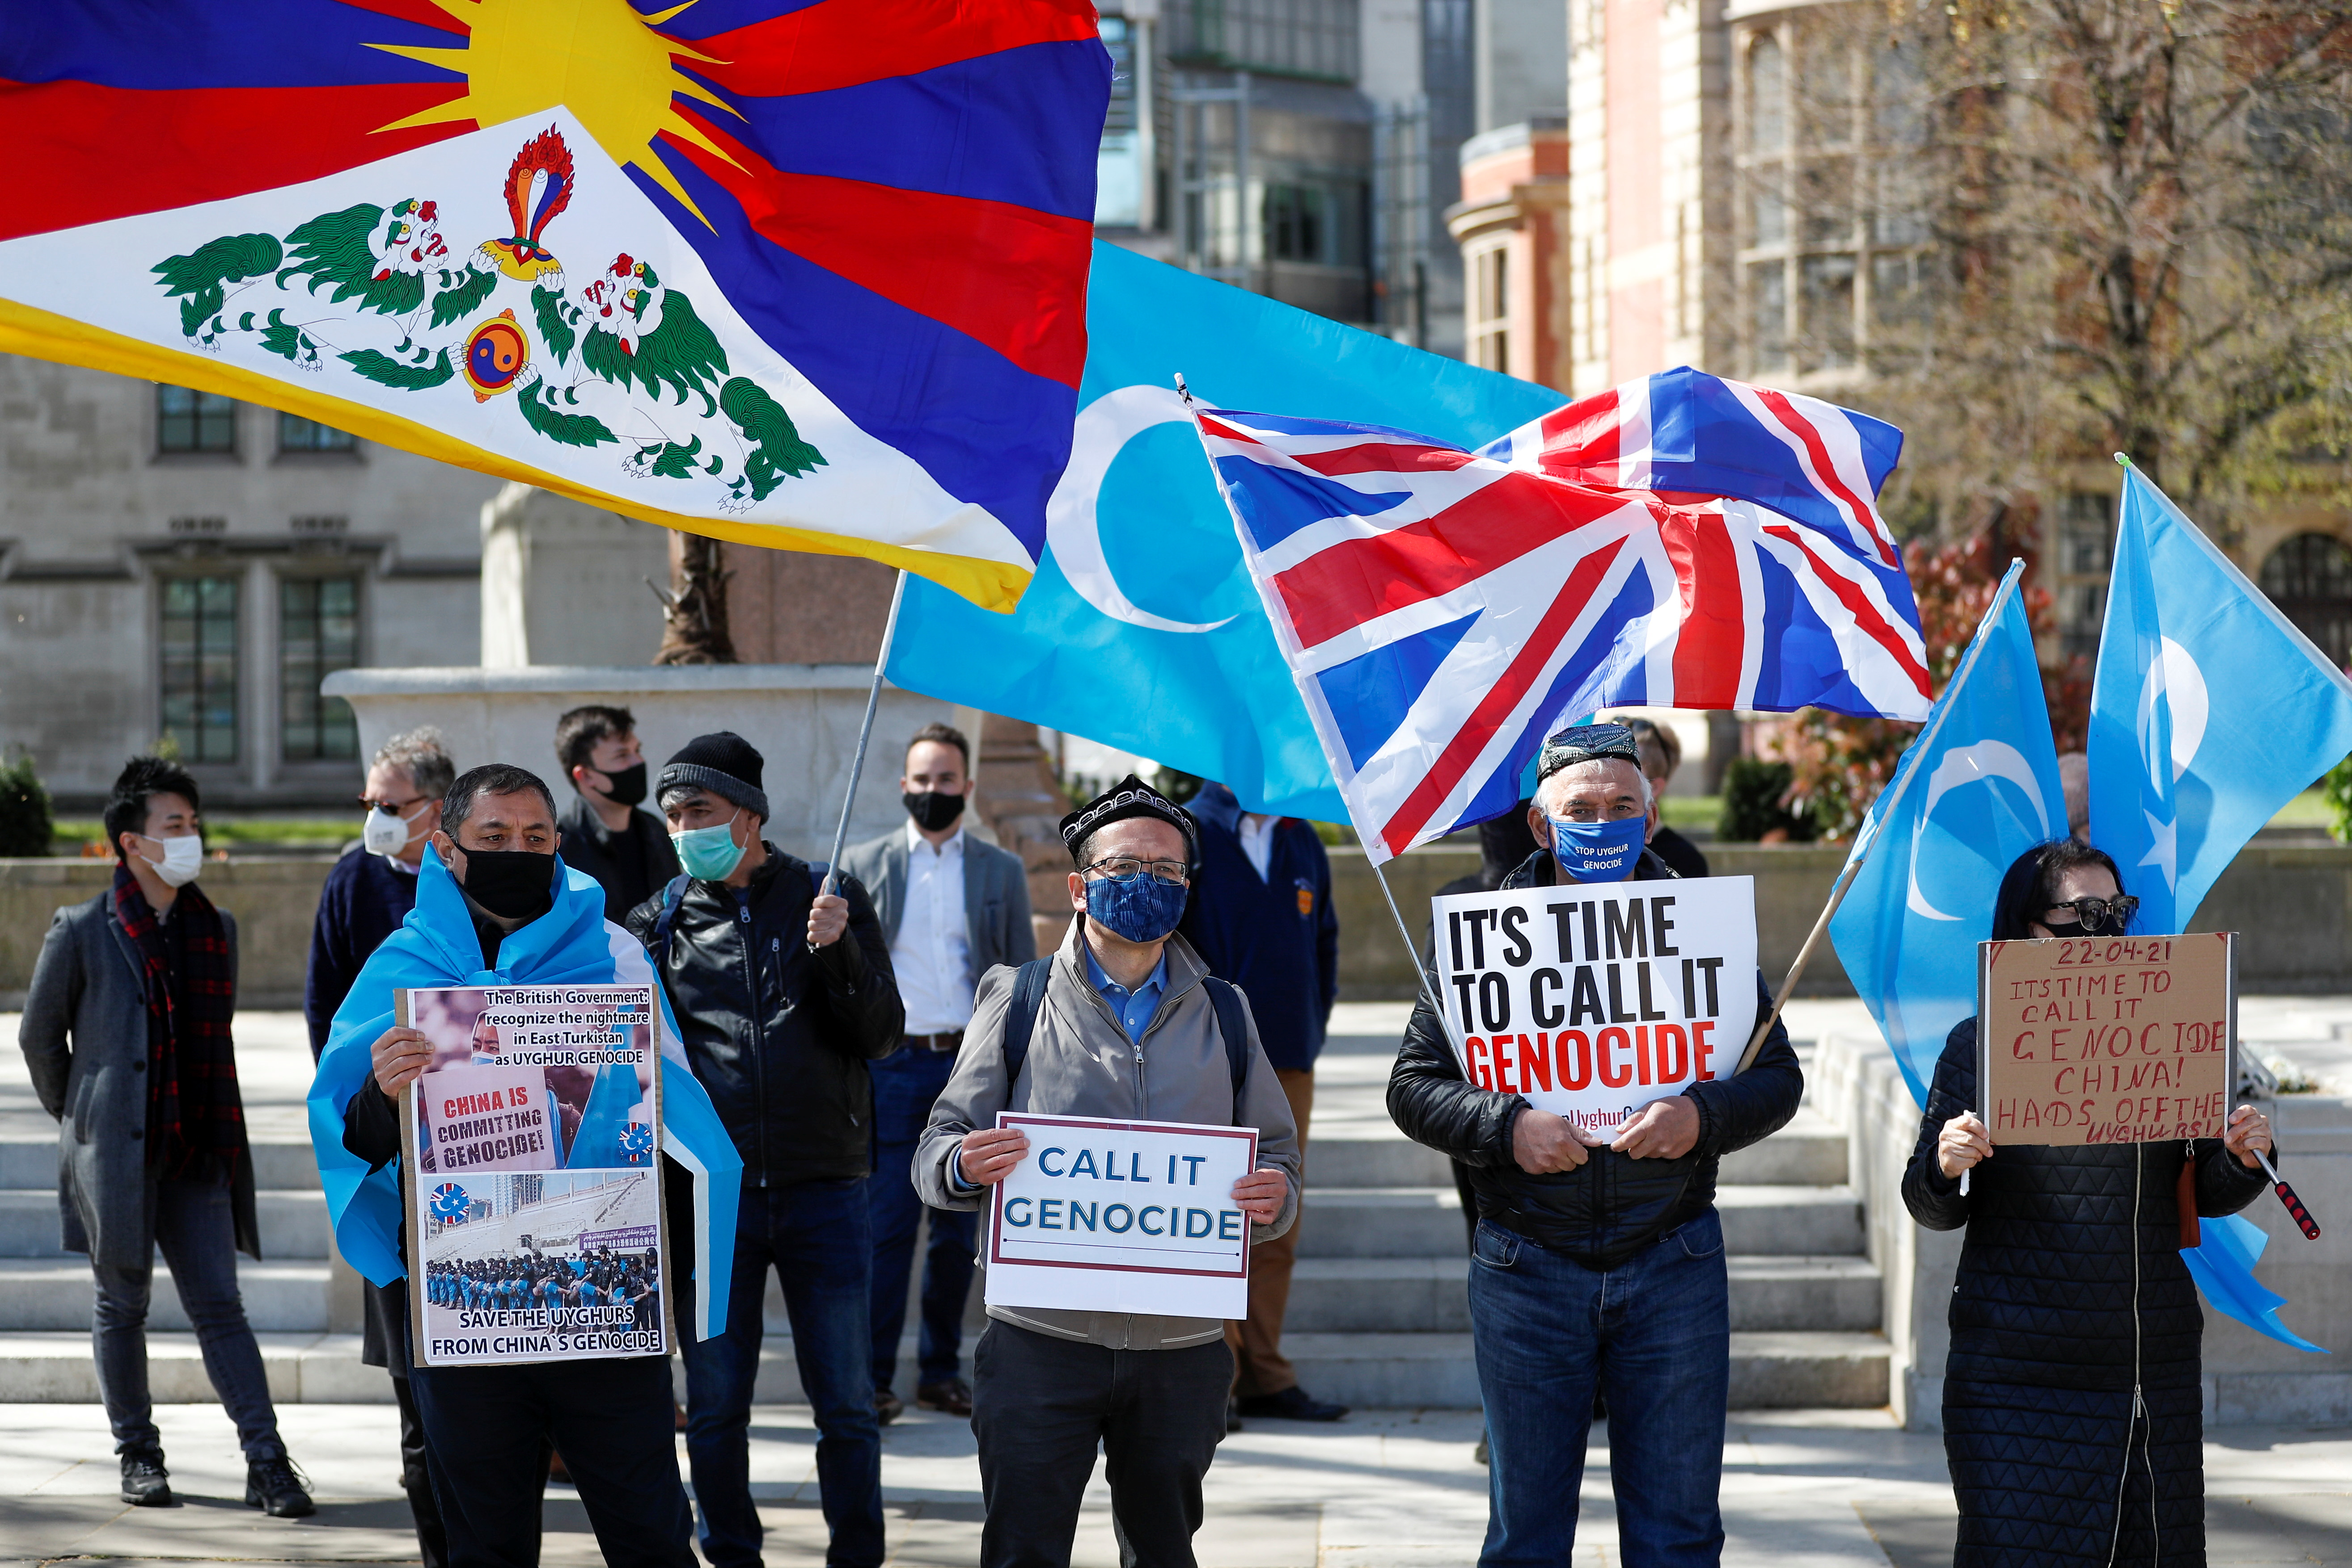 Demonstrators hold placards during a protest against Uyghur genocide, in London, Britain April 22, 2021. REUTERS/Peter Nicholls